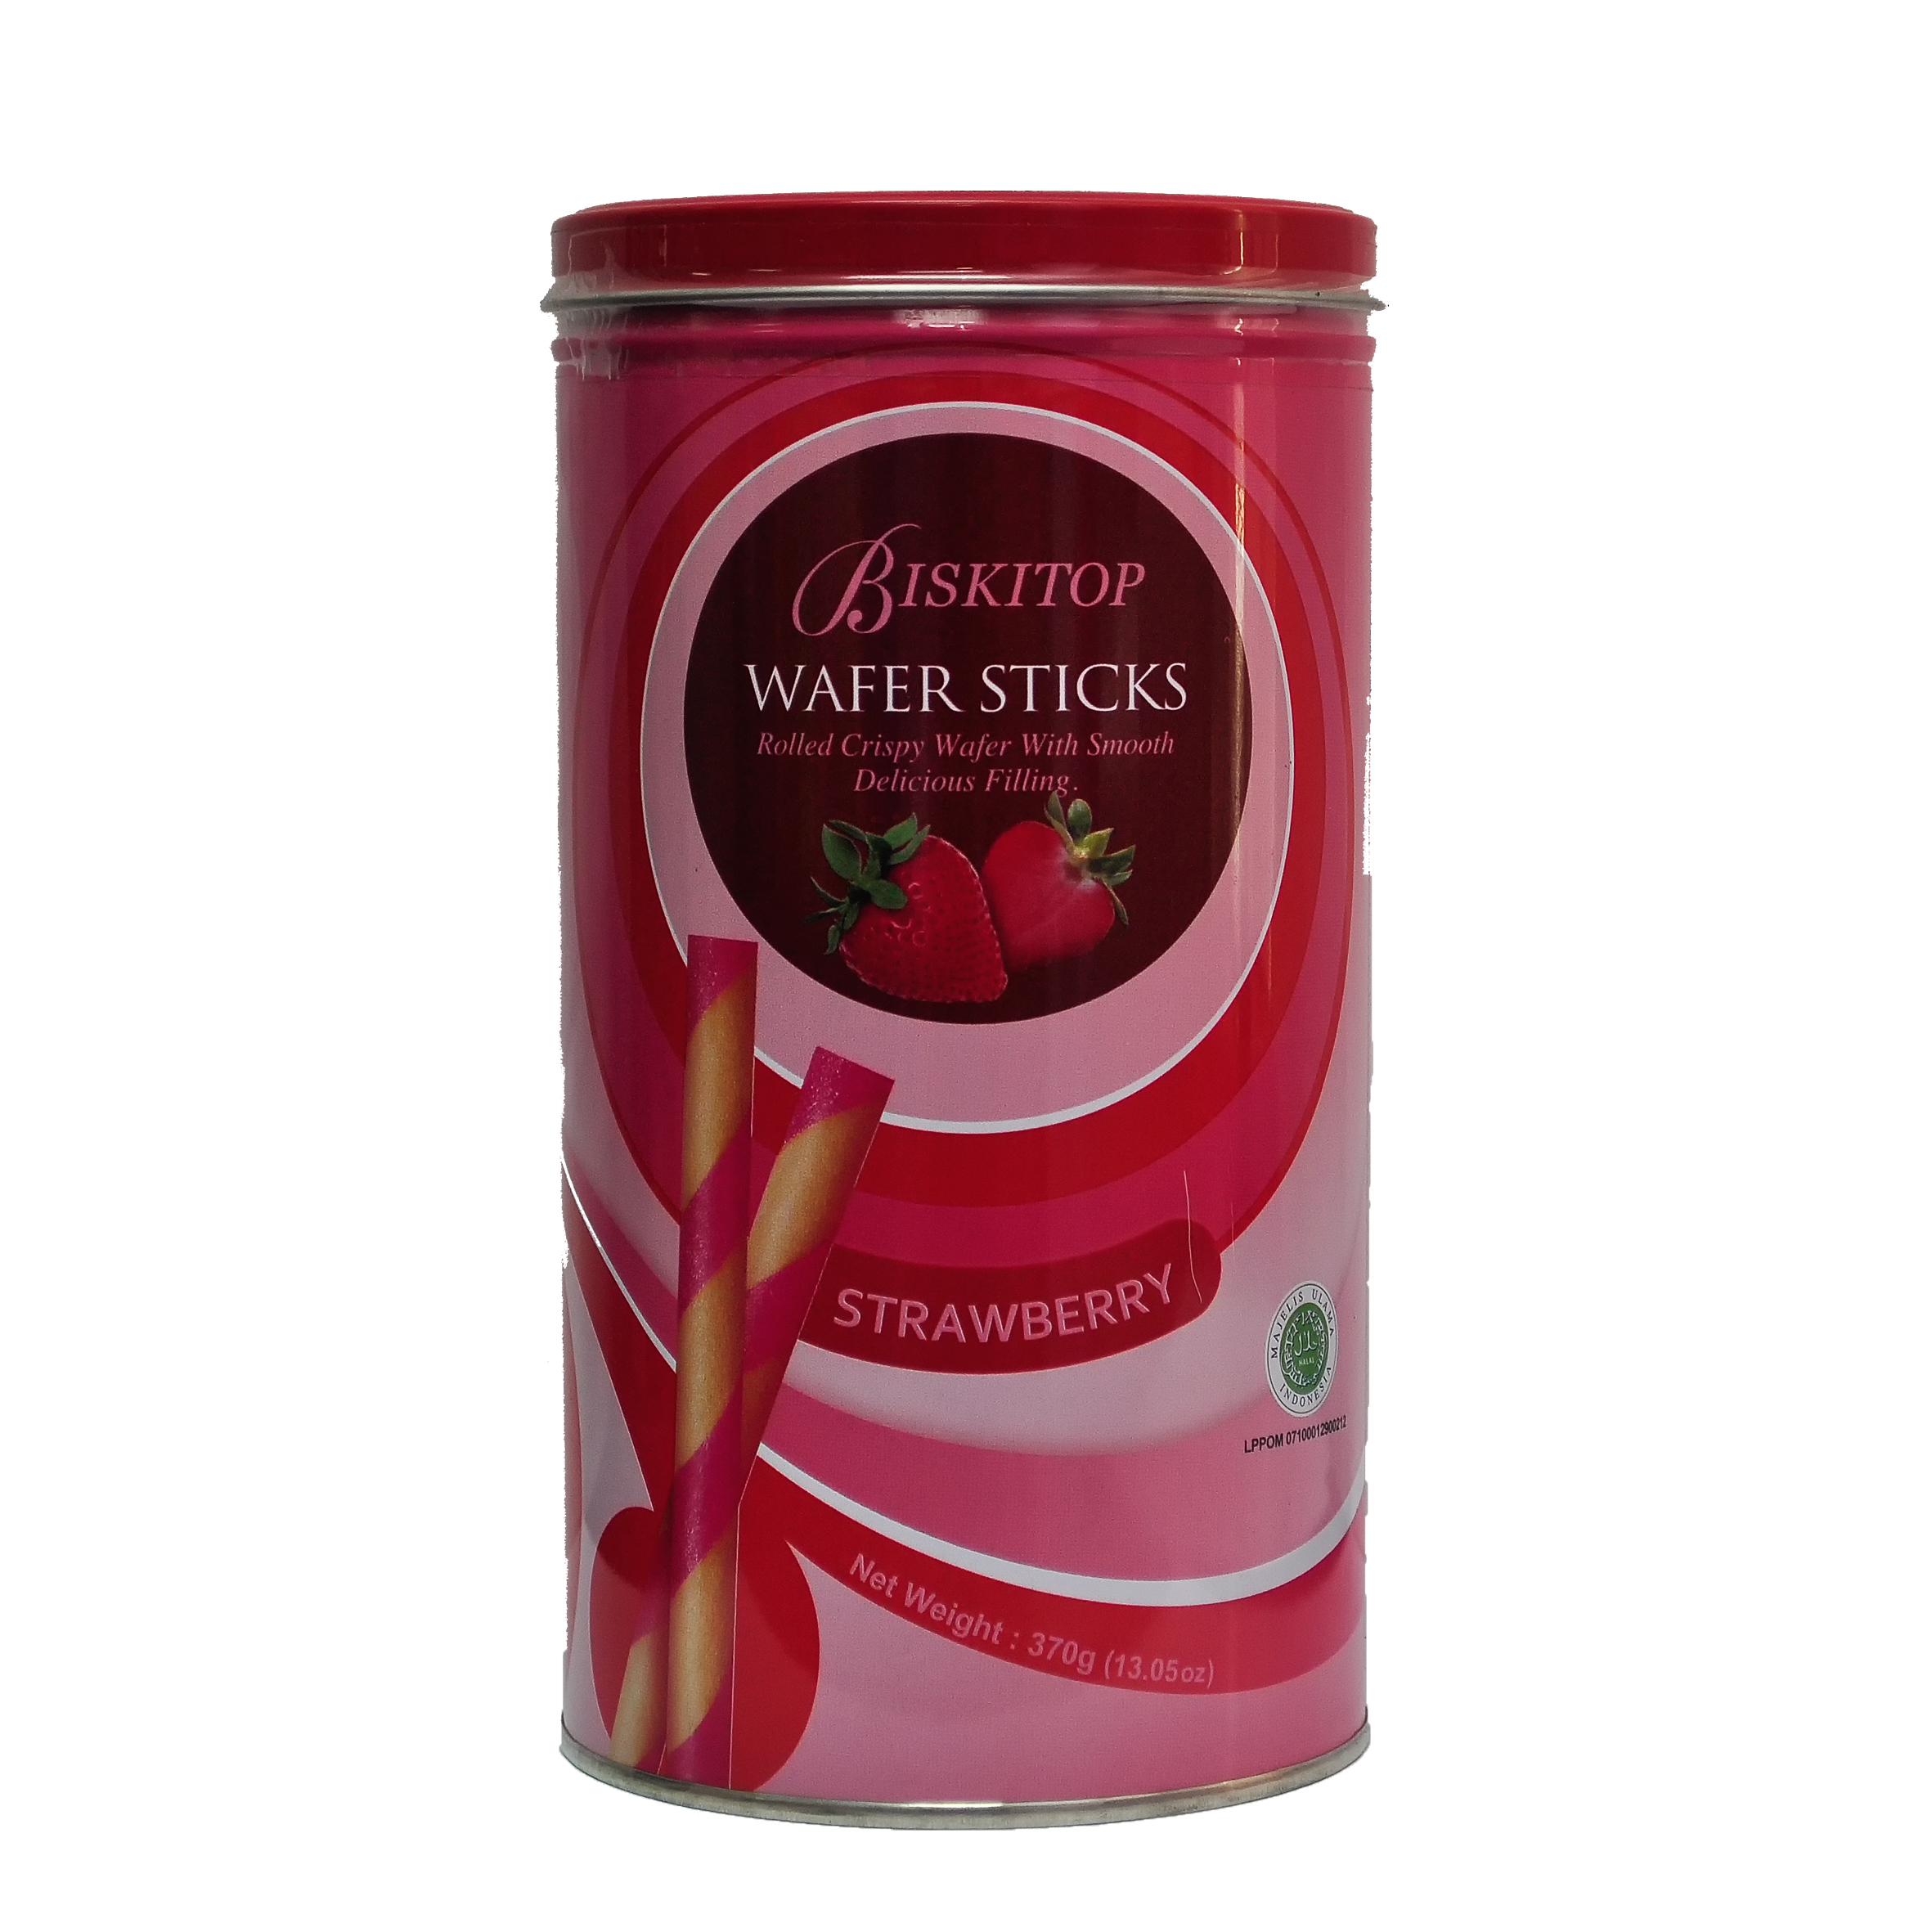 Biskitop Wafer Stick Strrawberry Tins.jpg